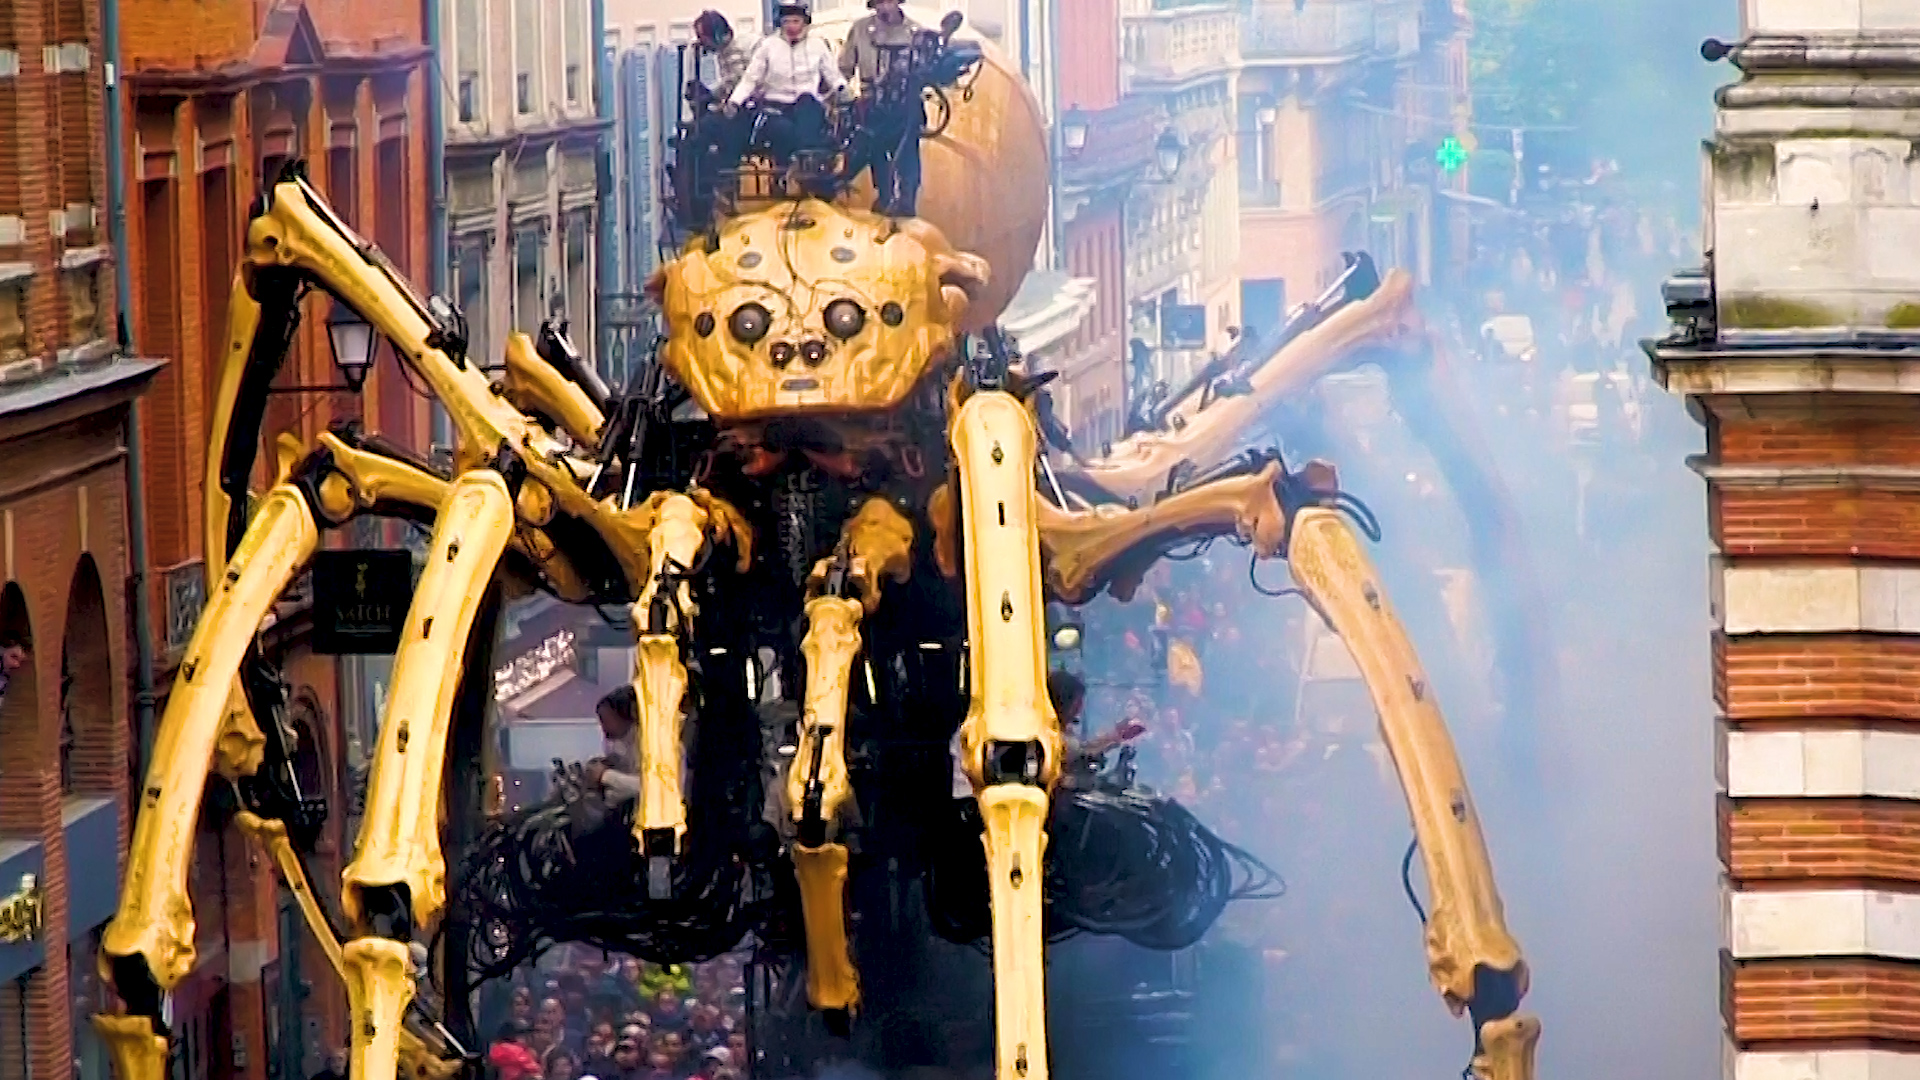 Giant Minotaur and spider robots perform in the streets of France